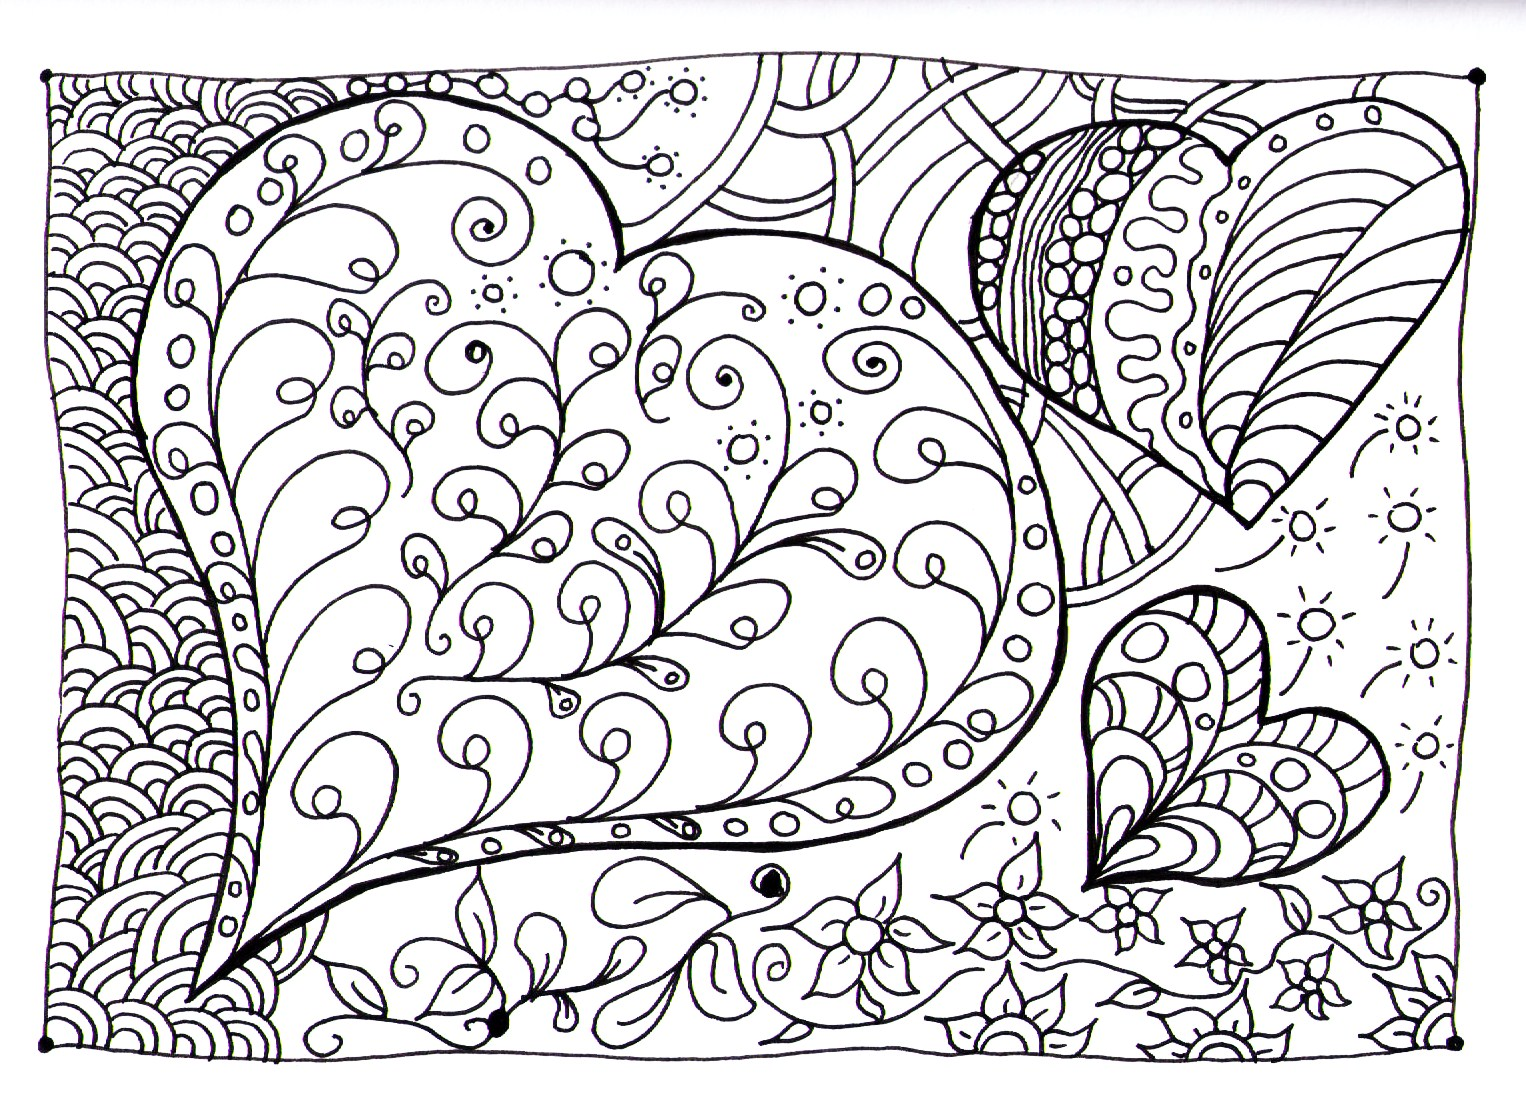 Coeur zen anti stress art th rapie coloriages - Coloriage art ...